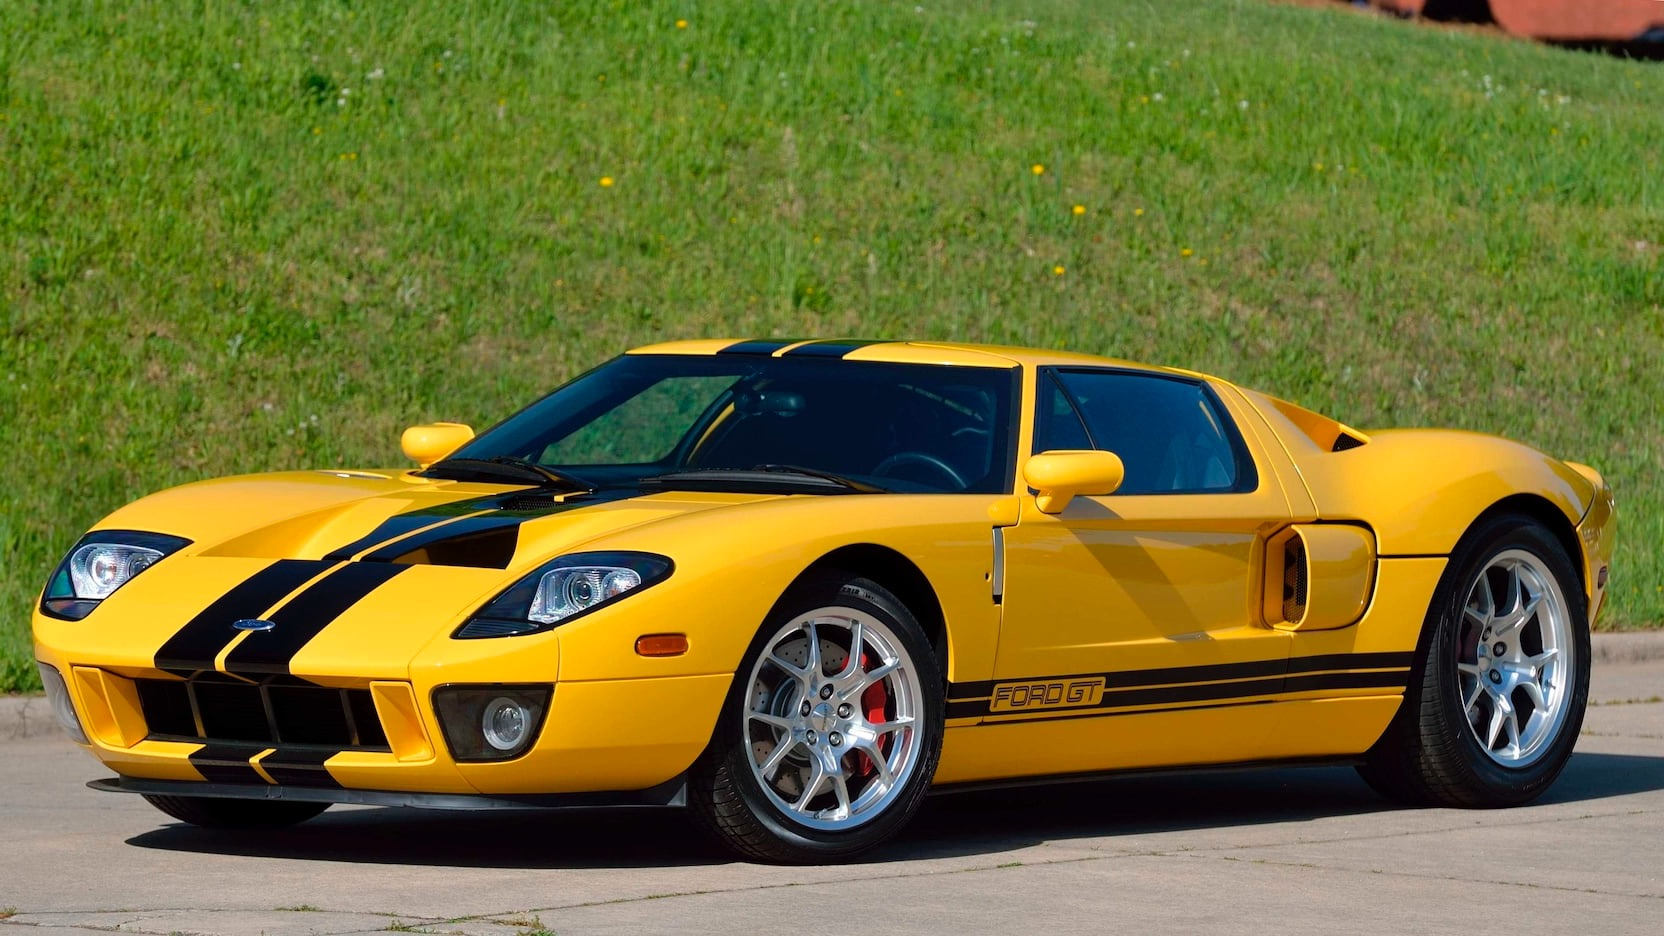 Used-2006-Ford-GT-Coupe-All-4-Options-Yellow-RARE-1-OF-171